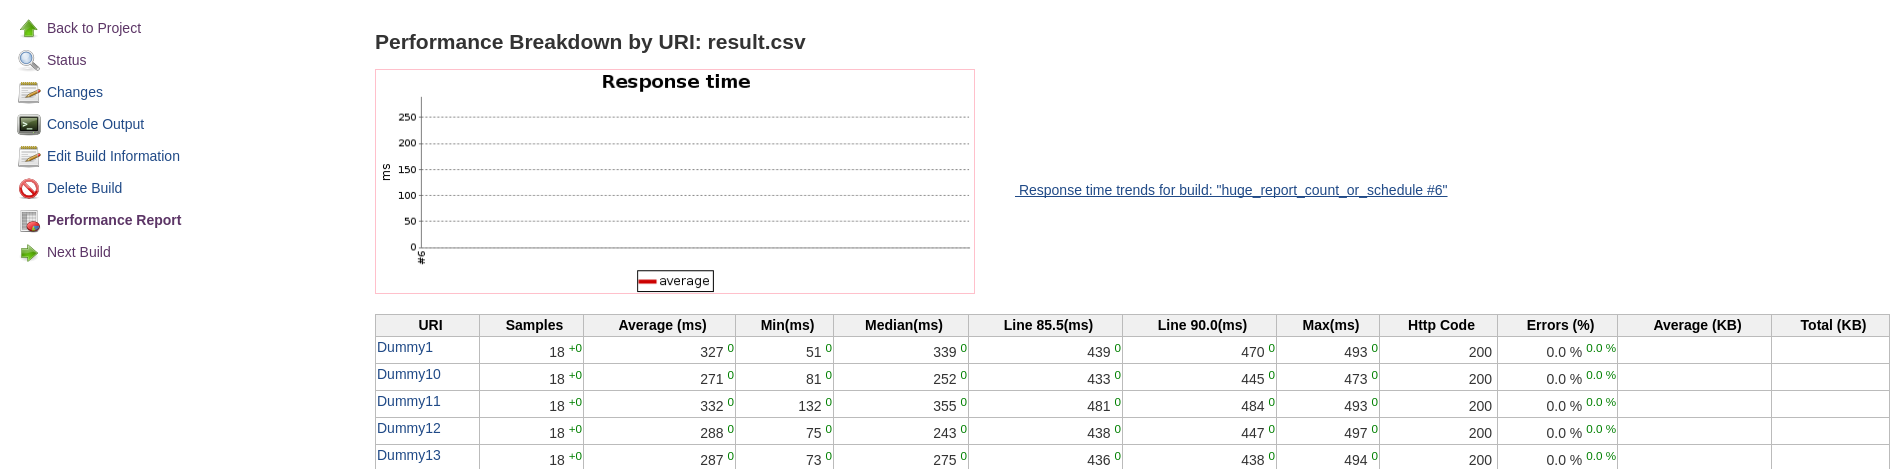 JENKINS-49225] Graph not generated on scheduled performance